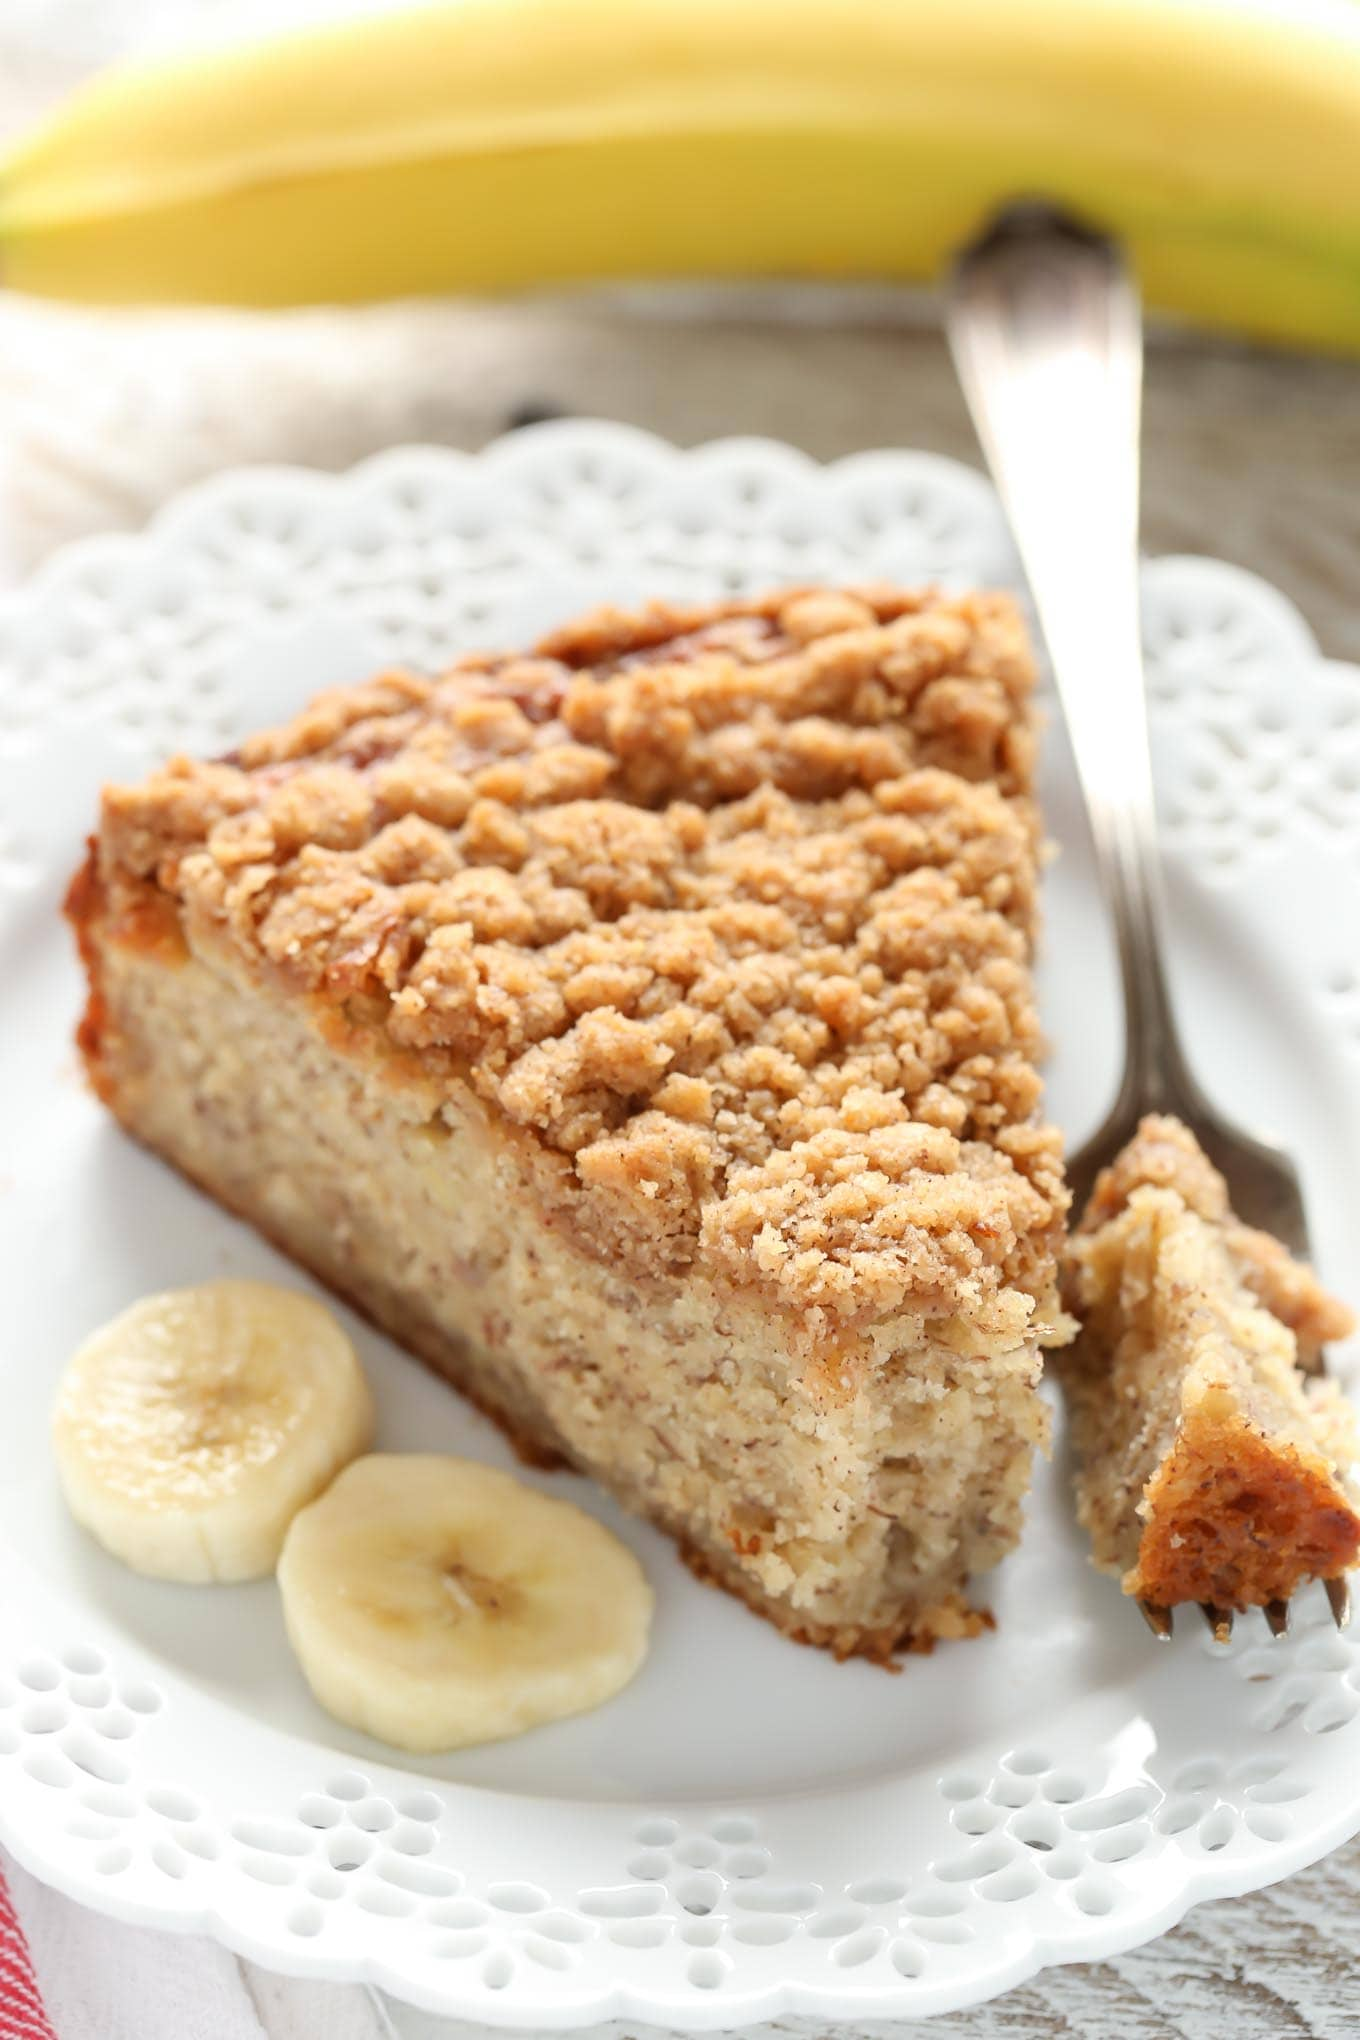 A moist banana cake topped with an easy crumb topping. This Banana Crumb Cake is a perfect way to use those ripe bananas!